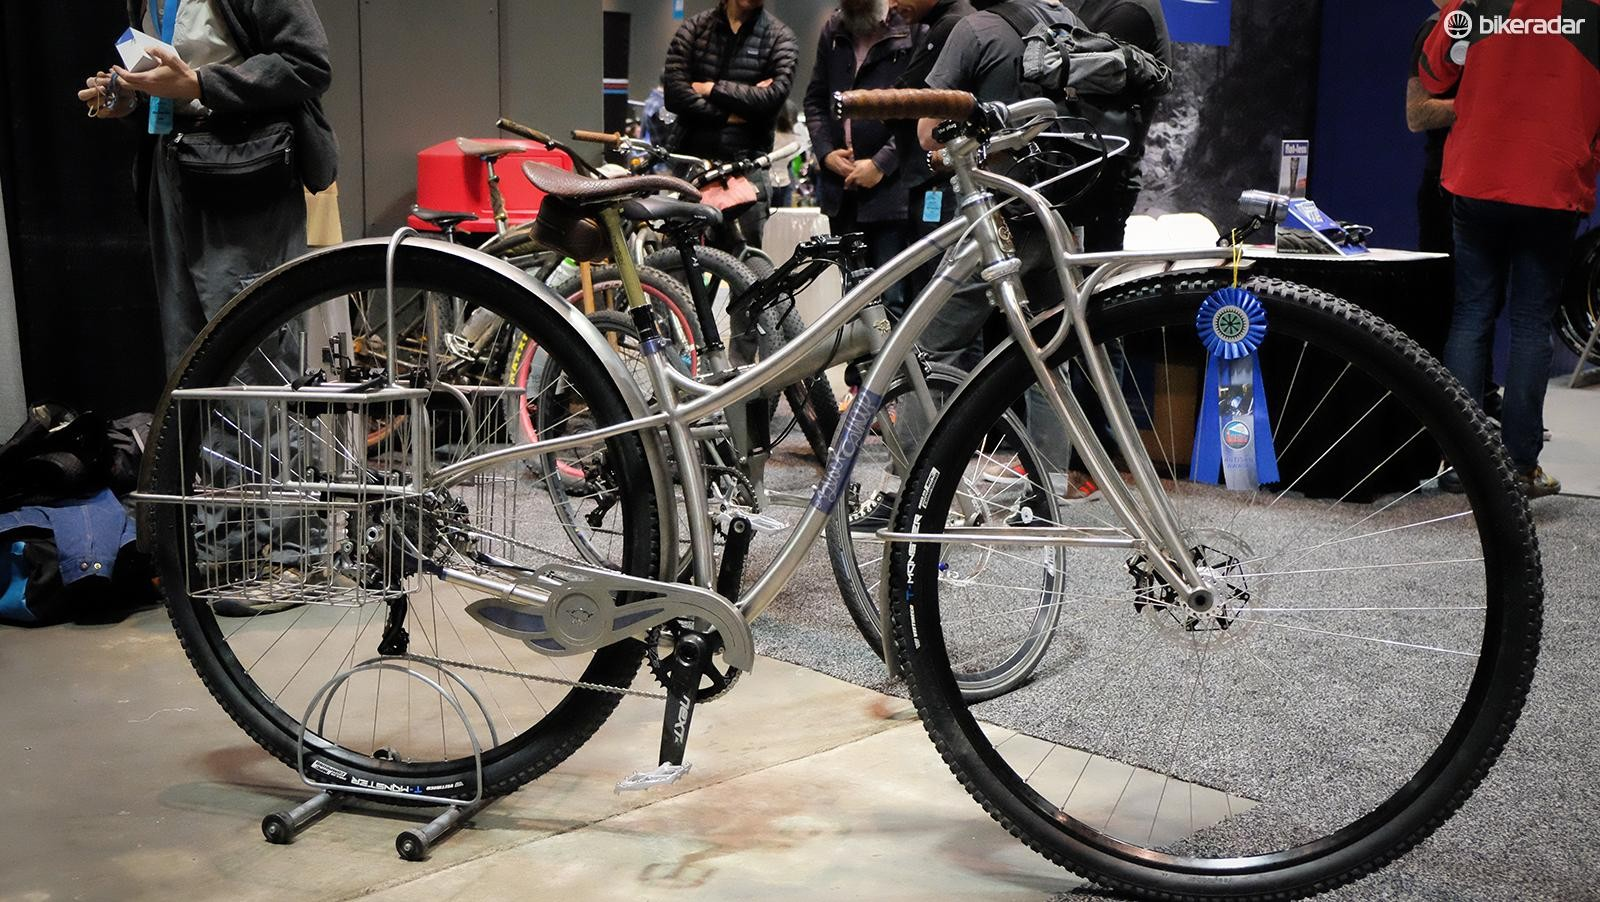 Blacksheep always brings wonderfully weird creations to the show. This 36er Ti townie was no exception